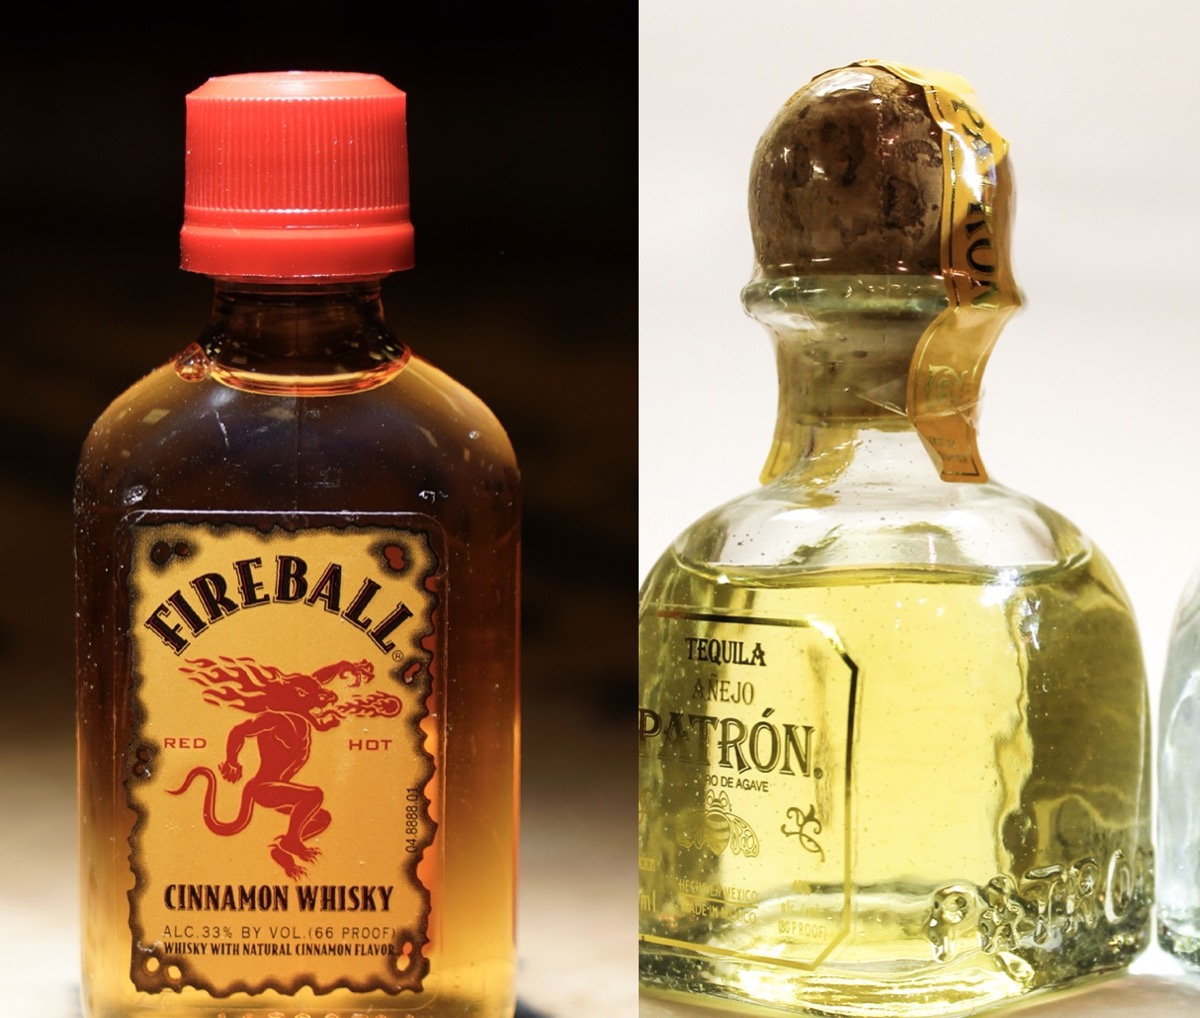 Mini bottle of fireball and a bottle of Patron